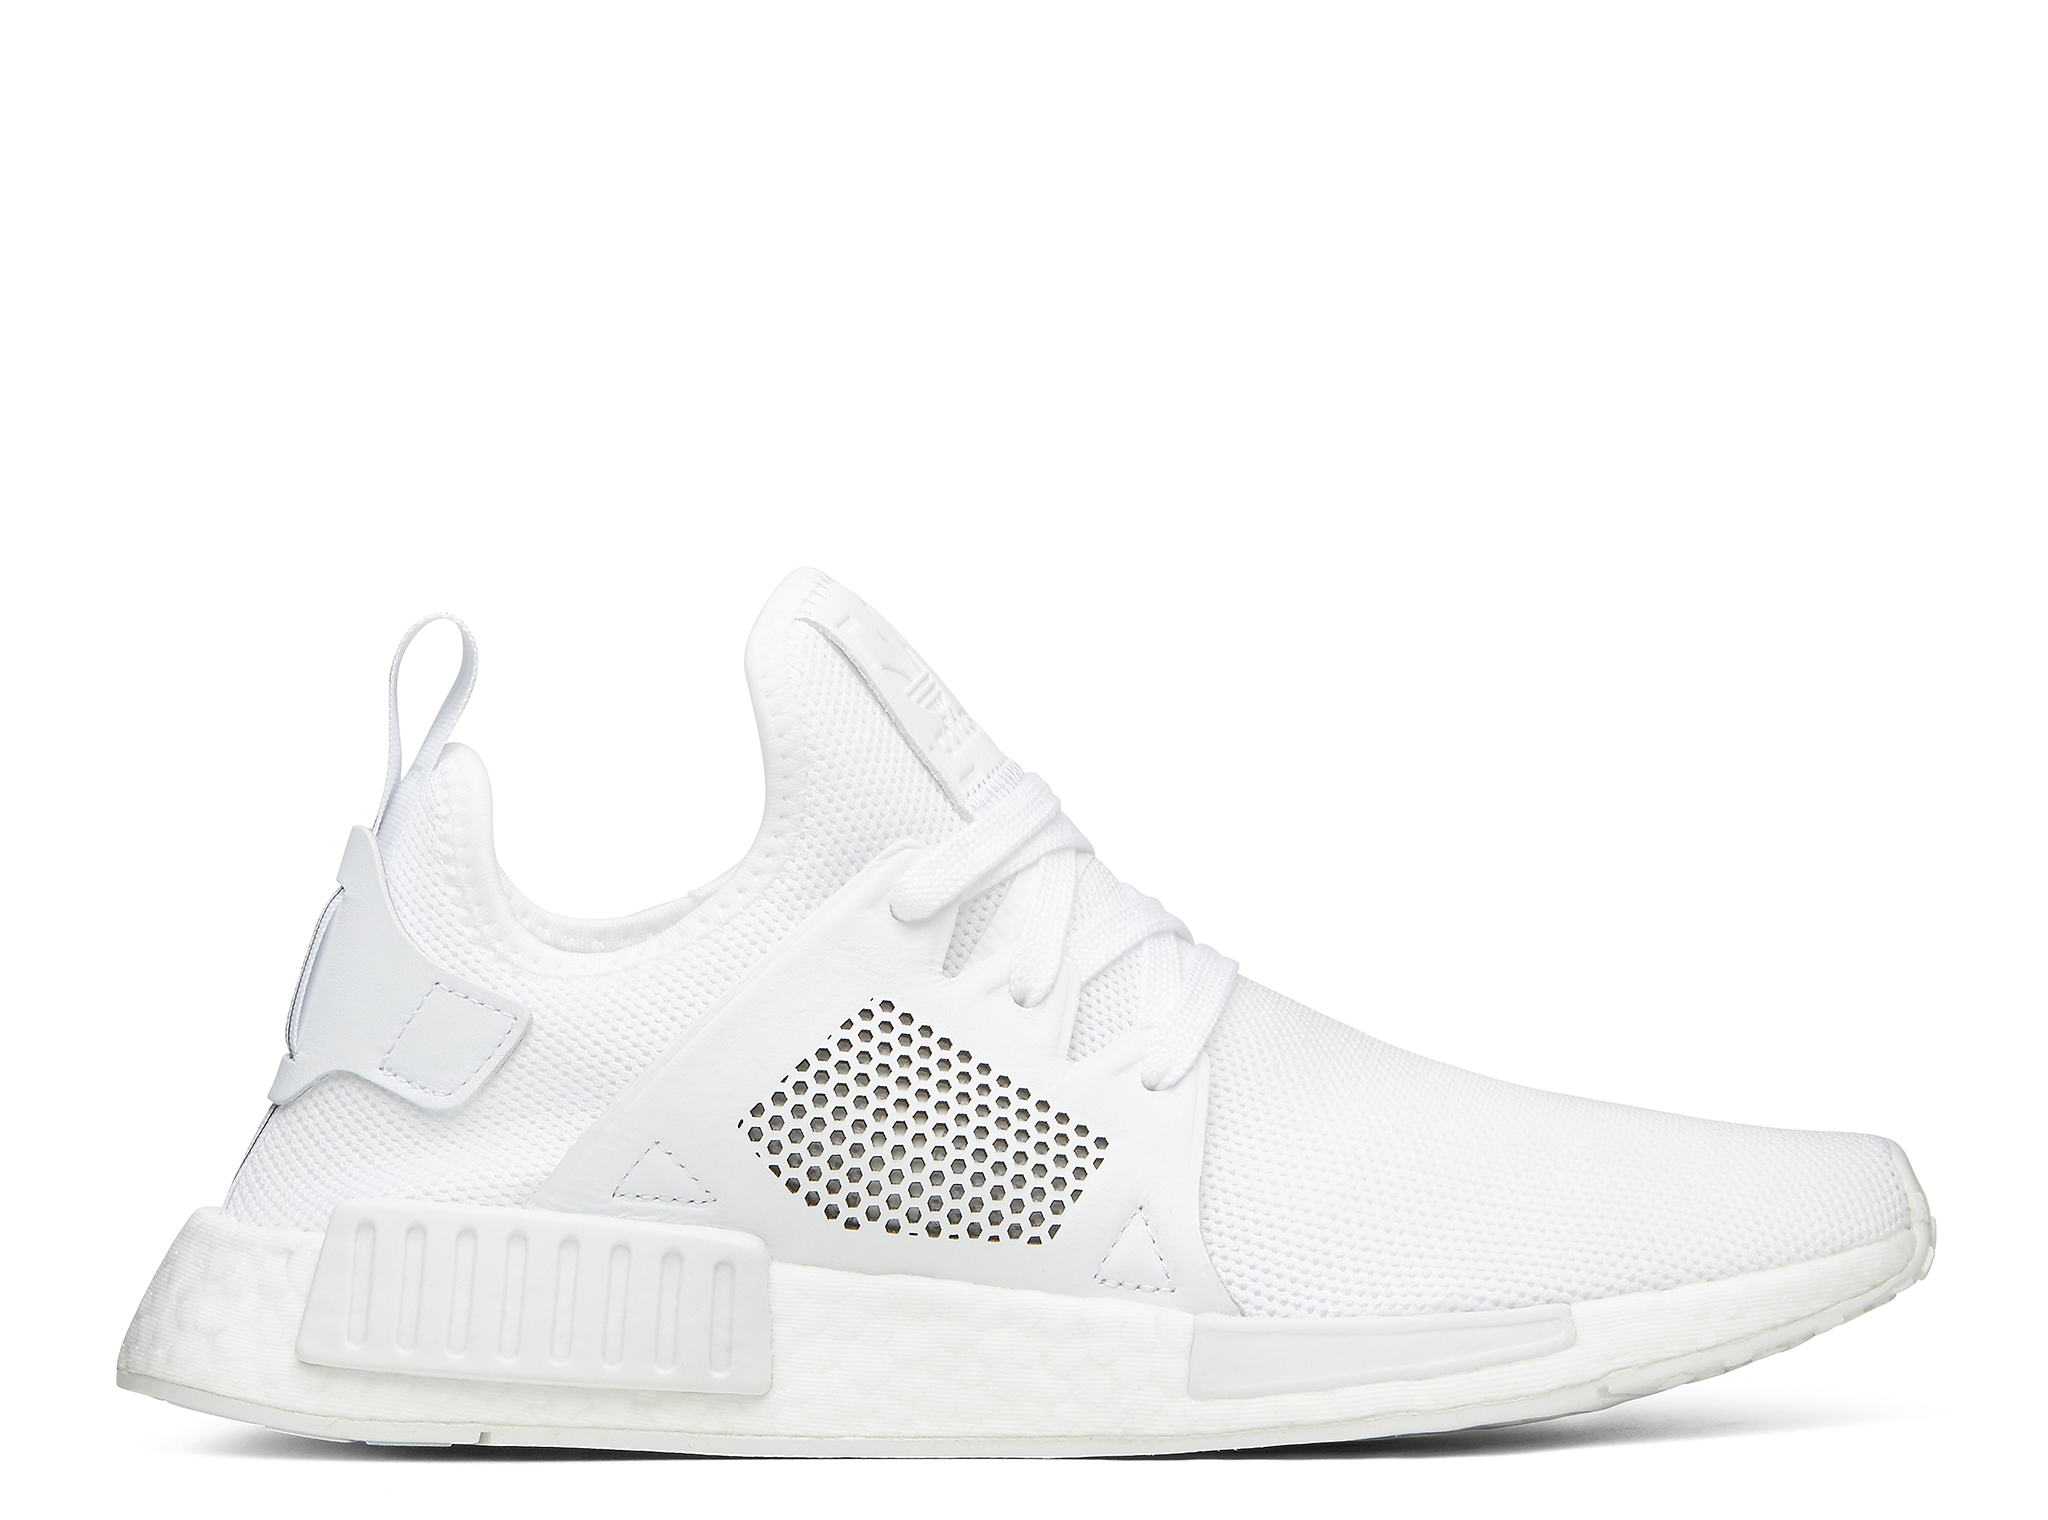 BNIB RARE ADIDAS NMD XR1 PK S32216 WHITE/BLACK UK 9